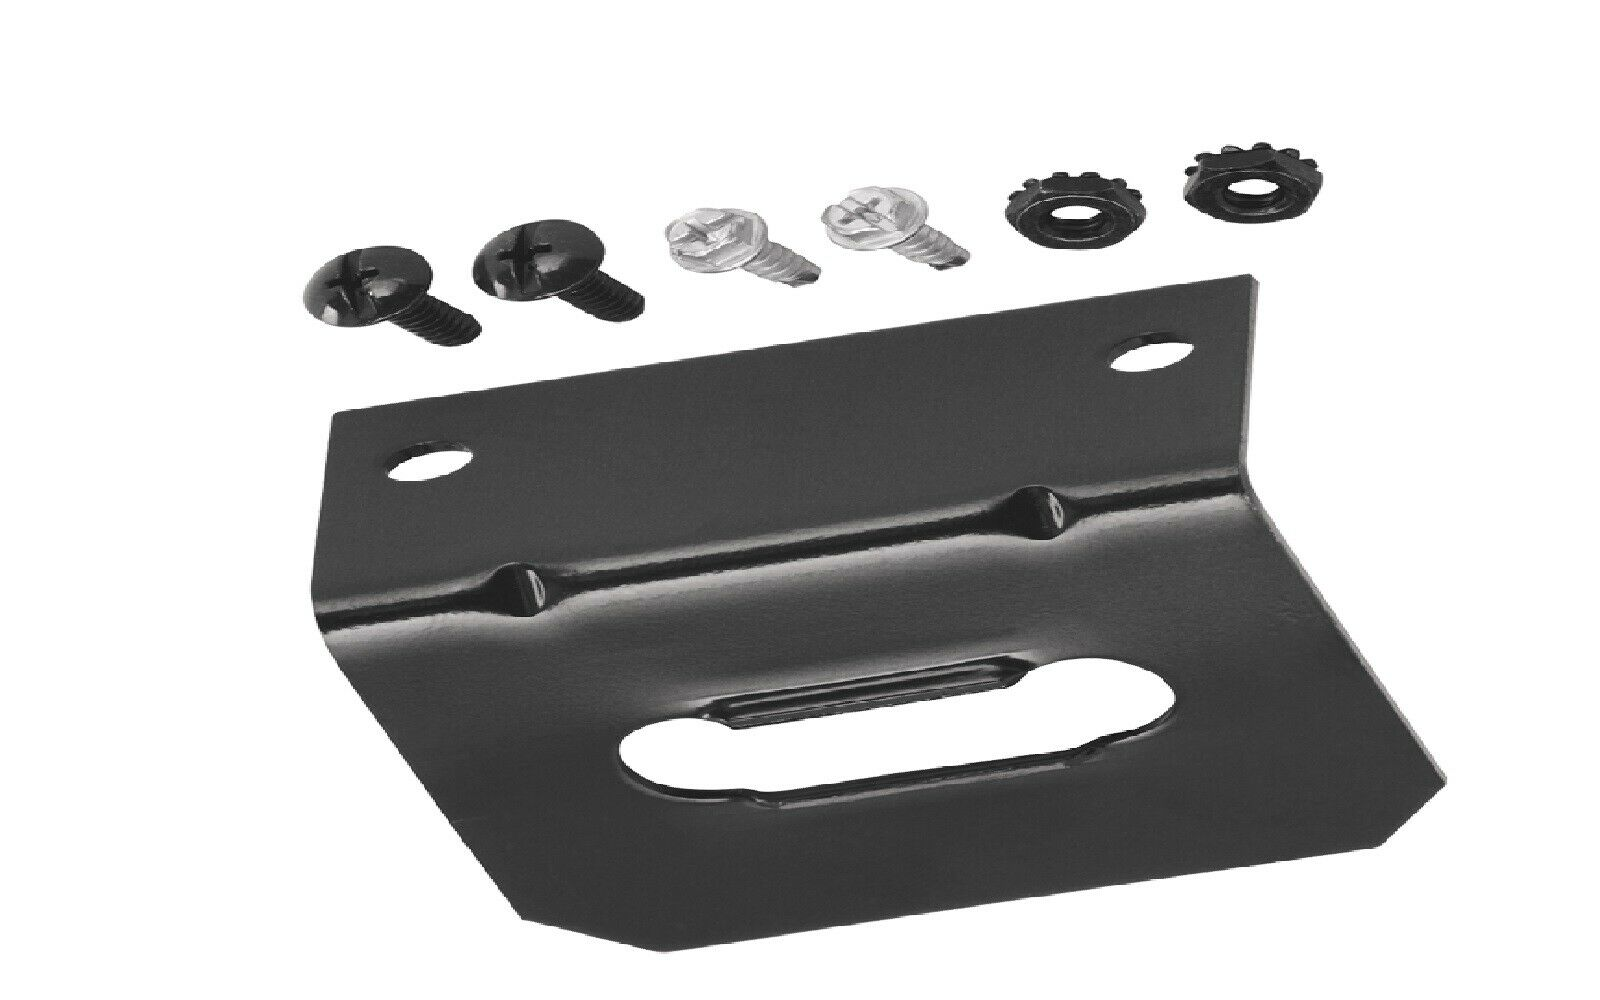 tow ready 118144 trailer wire connector mounting bracket 14 69 rh picclick com trailer hitch wiring bracket trailer wiring bracket for 2015 frontier